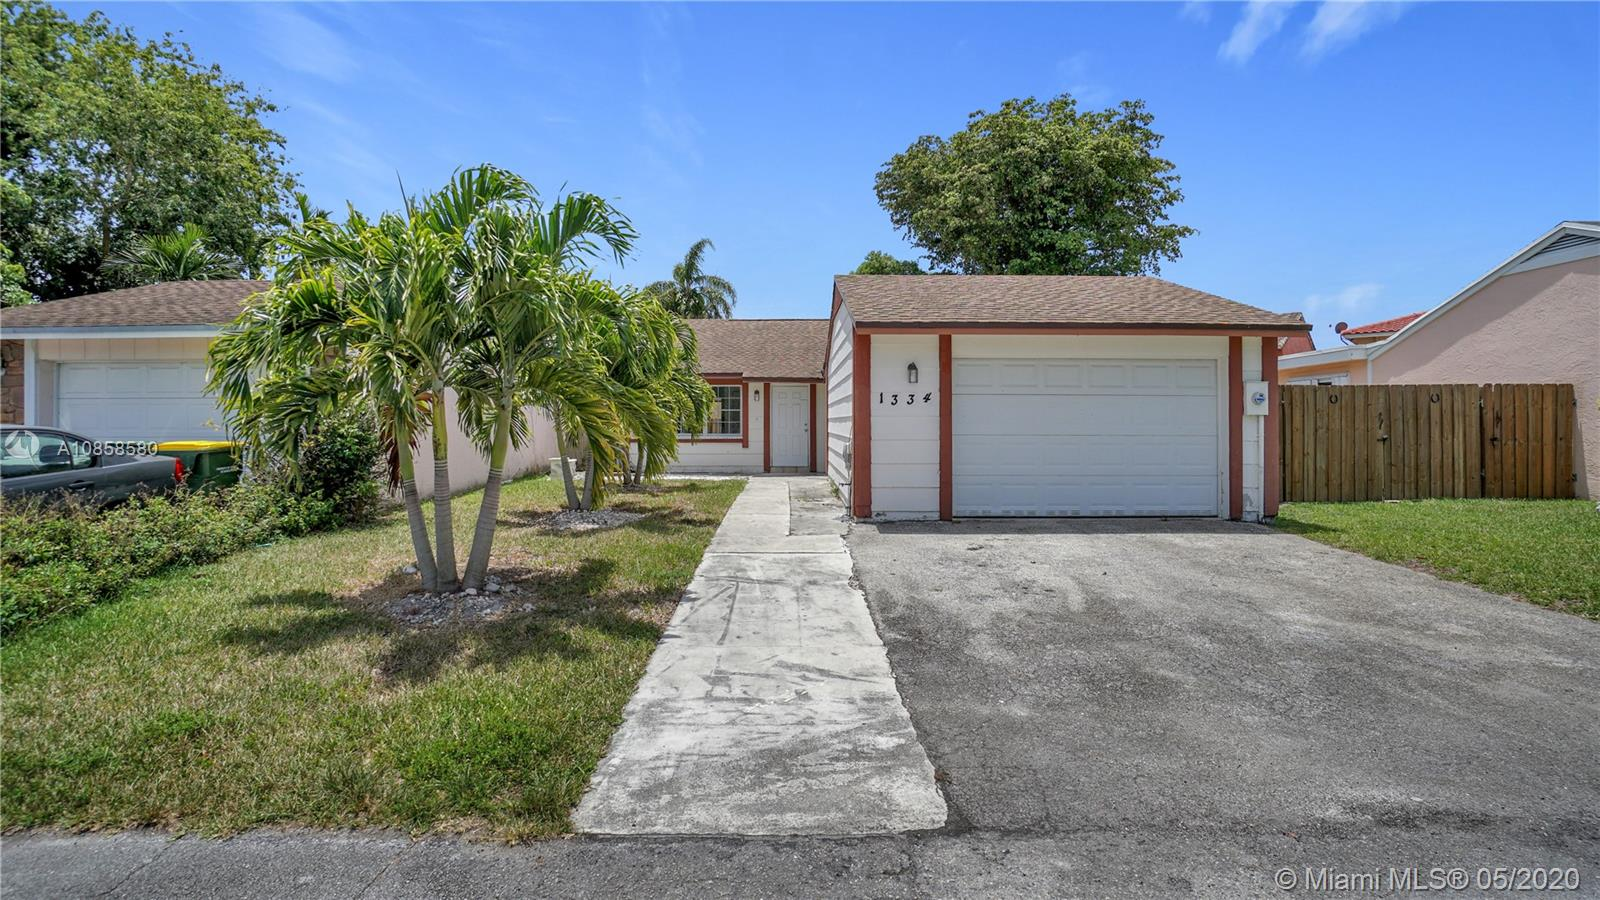 1334 S Quetzal Ct, Homestead, FL 33035 - Homestead, FL real estate listing